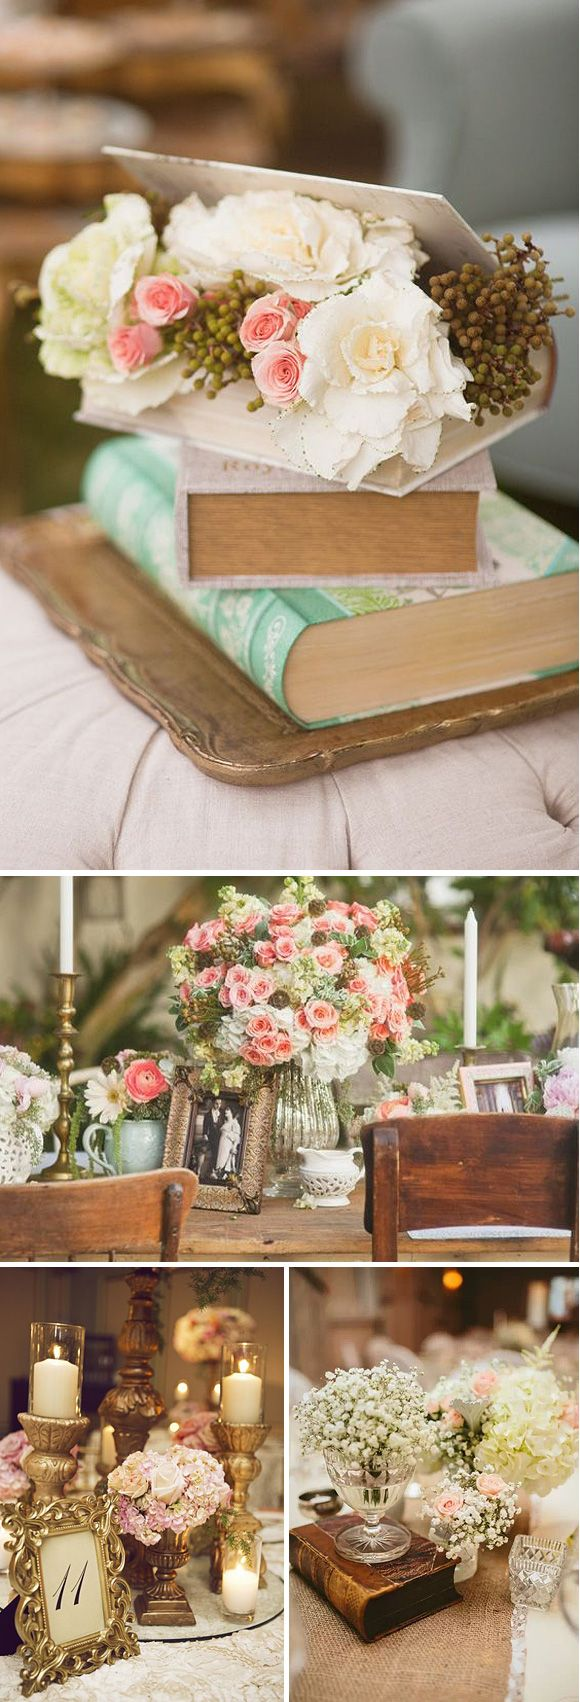 1000 images about wedding decor ideas on pinterest - Decoracion boda vintage ...